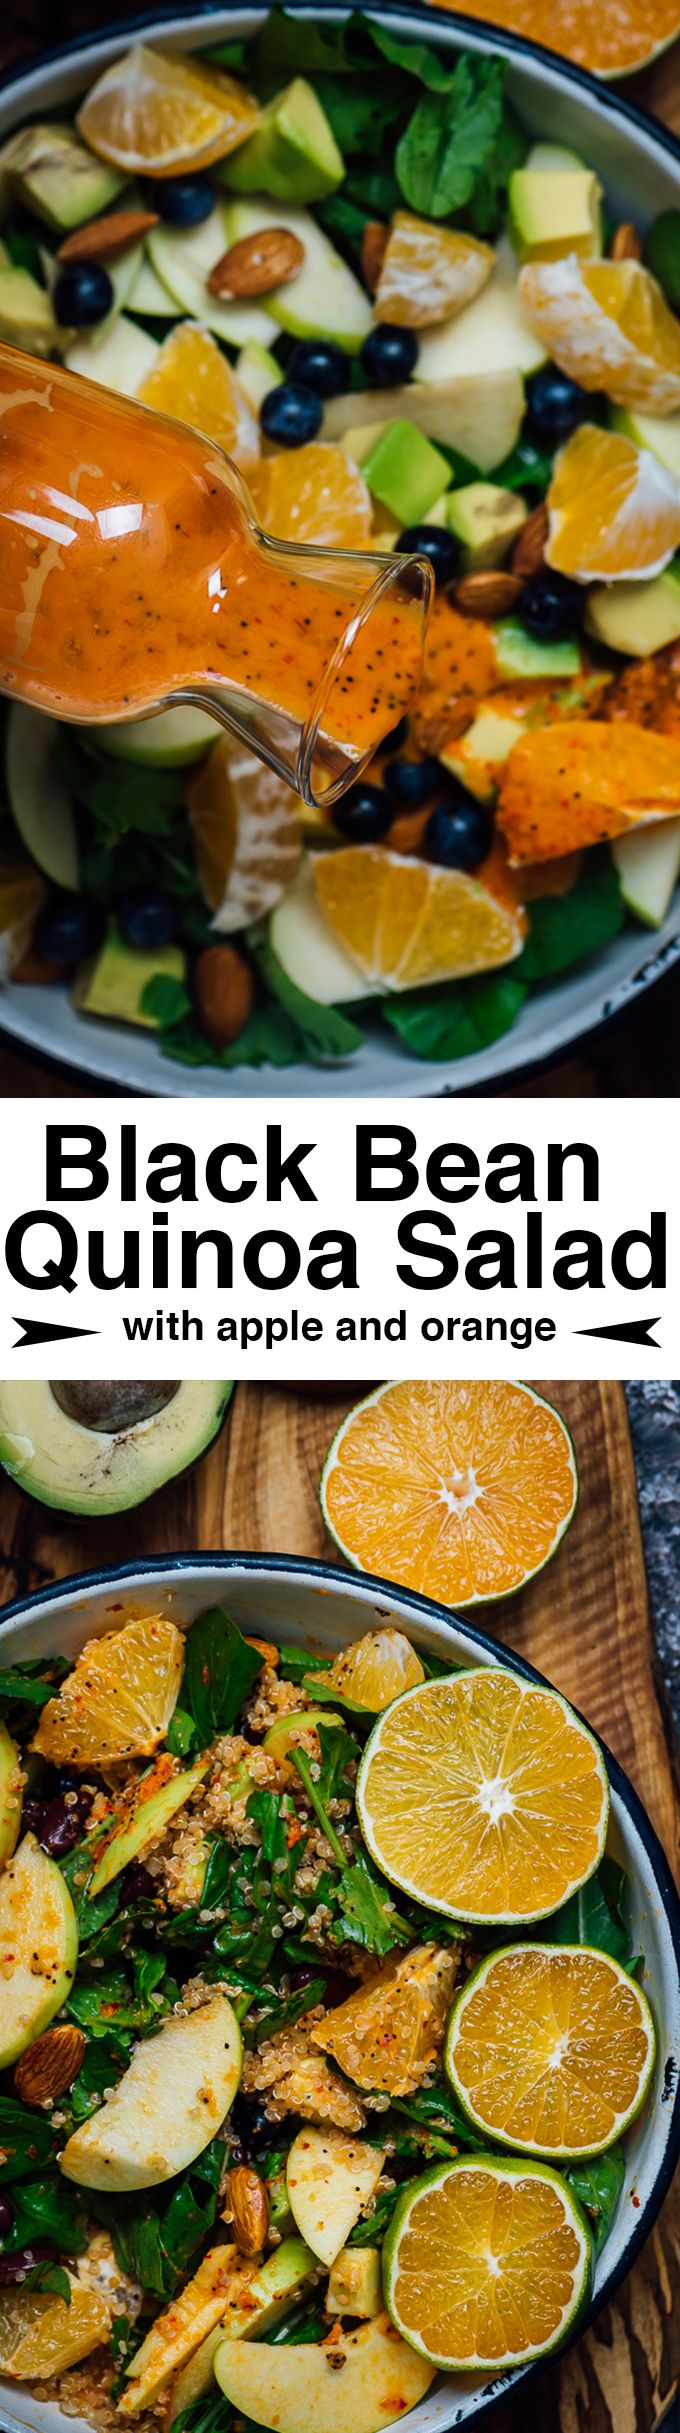 Black Bean Quinoa Salad with Apple and Orange is a perfect side dish to accompany fall dinners This power salad is definitely an immune system booster with the help of al...